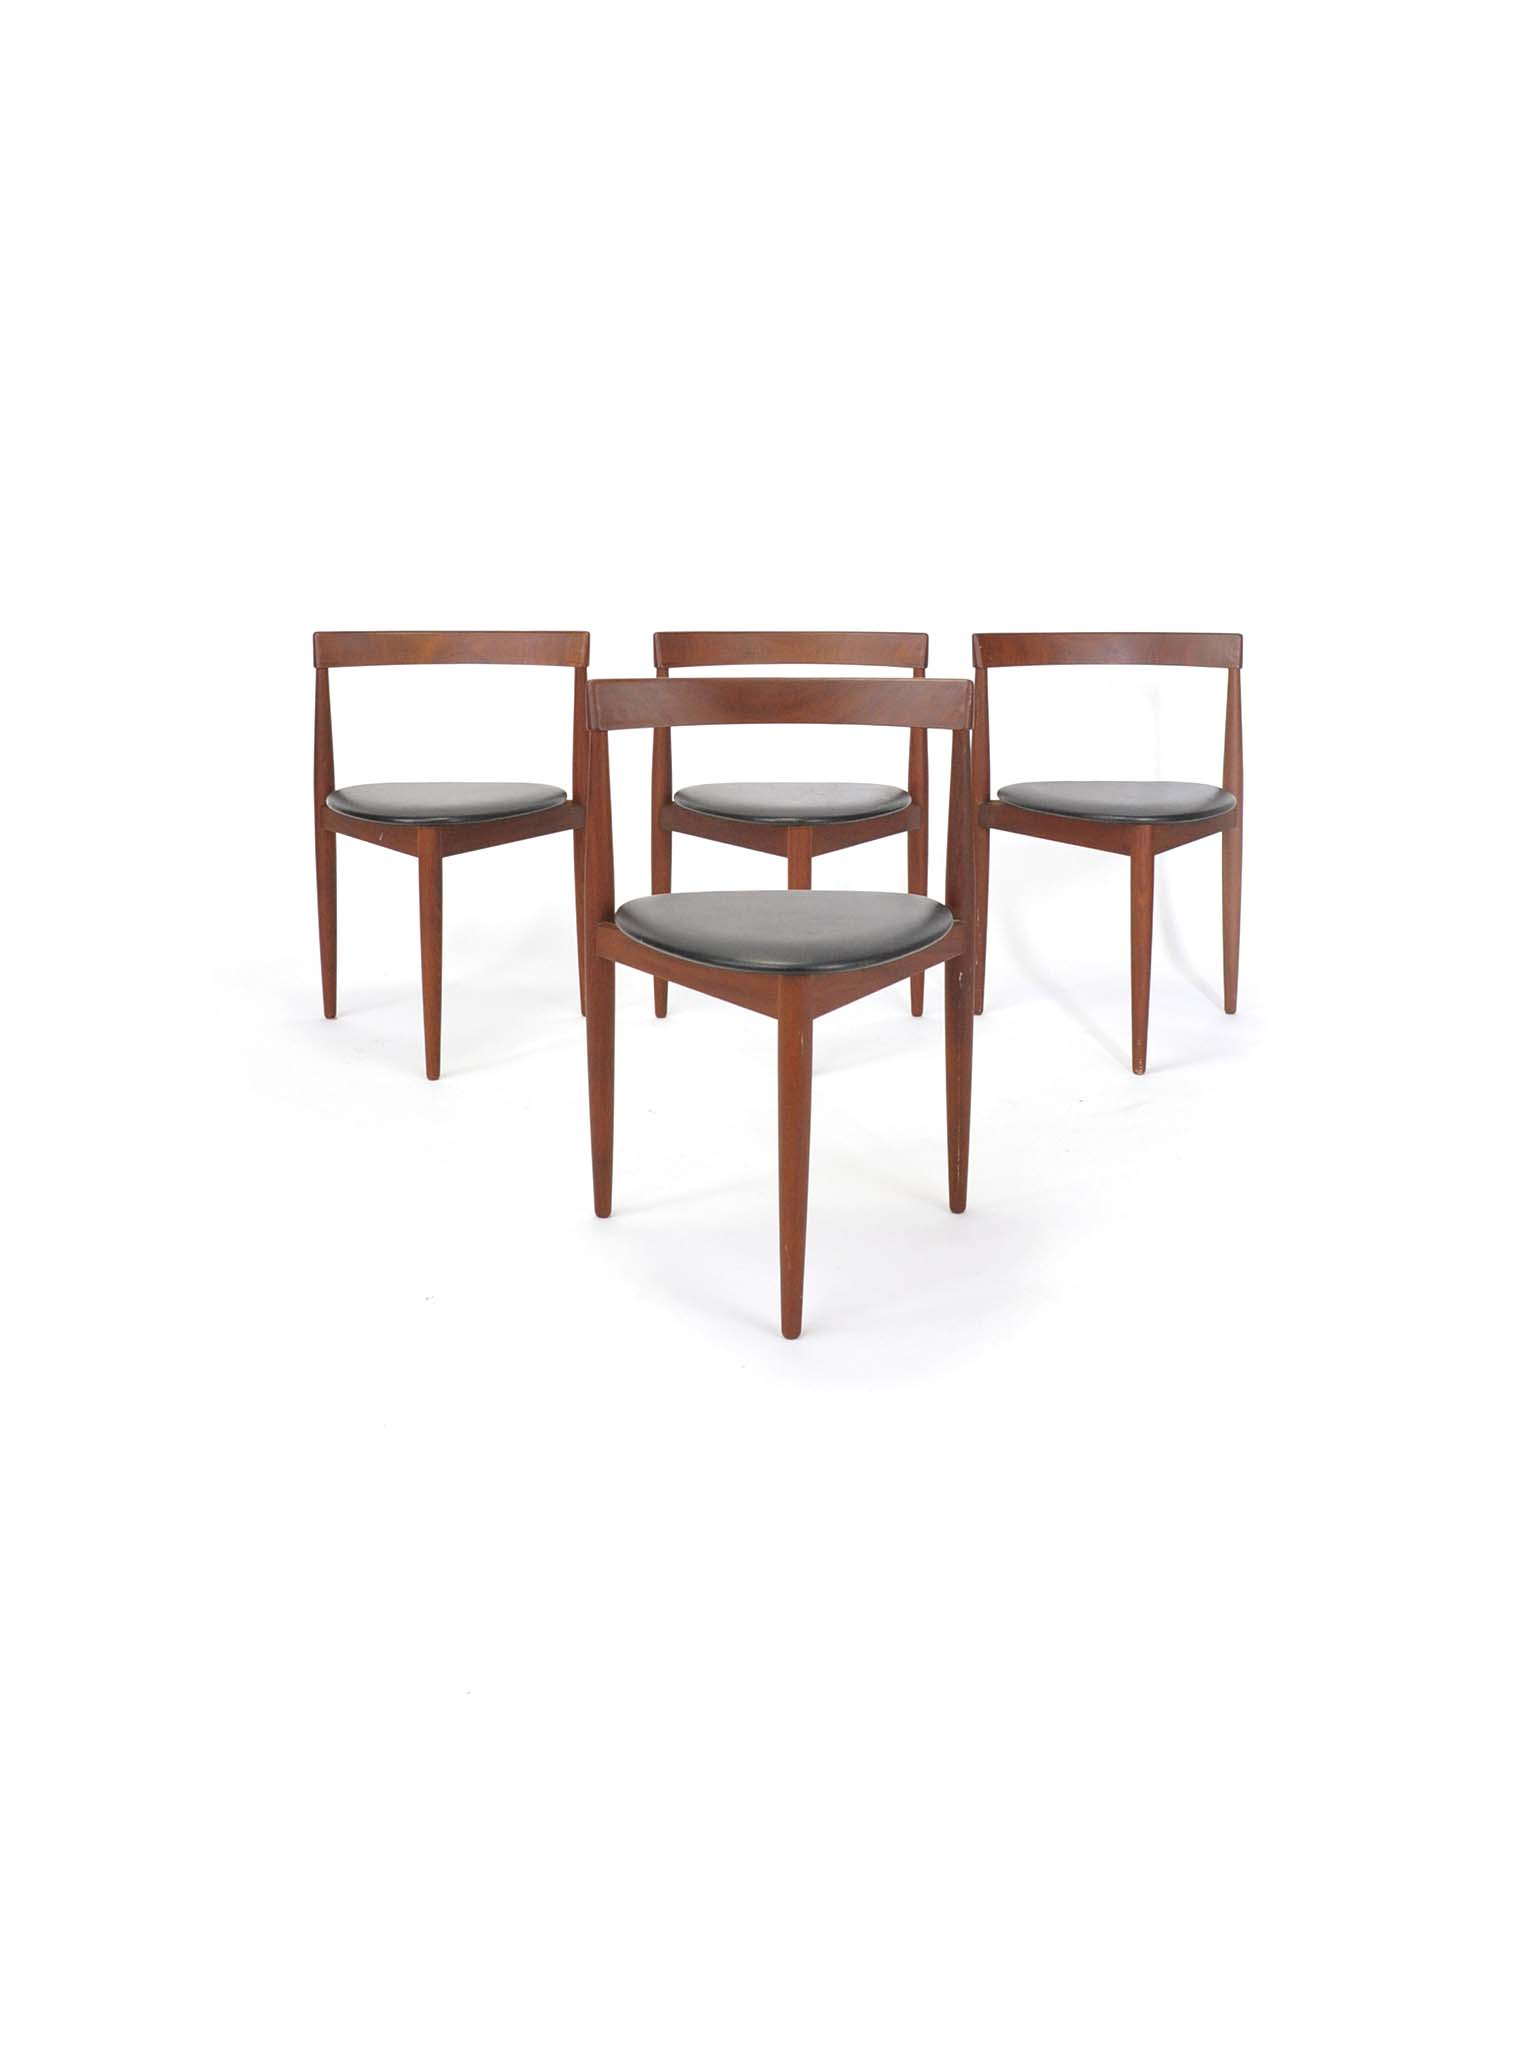 SET OF FOUR HANS OLSEN CHAIRS